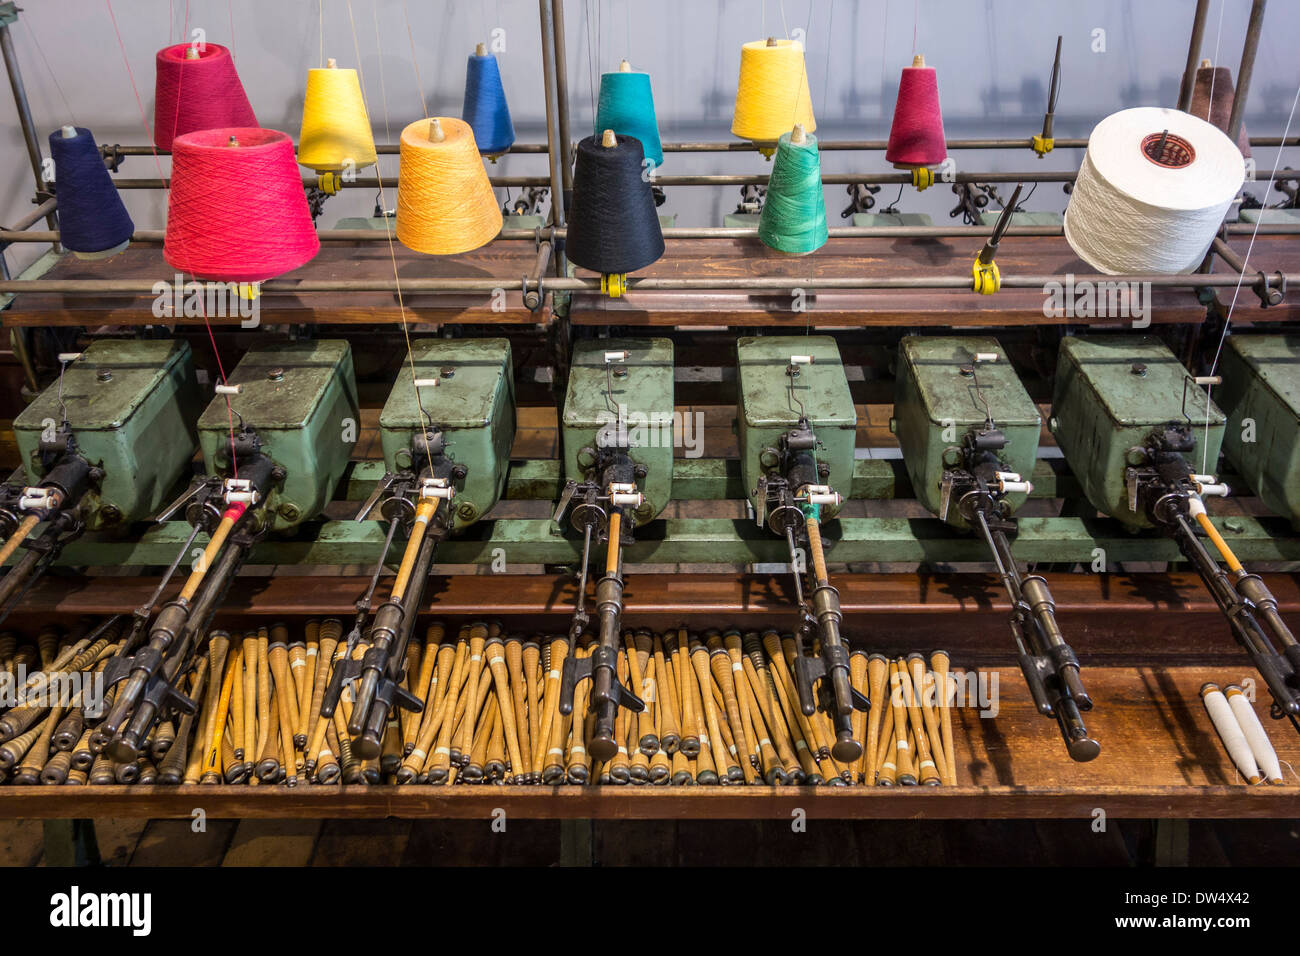 Colourful bobbins with yarn on spool machine in cotton mill at MIAT, industrial archaeology museum, Ghent, Belgium - Stock Image